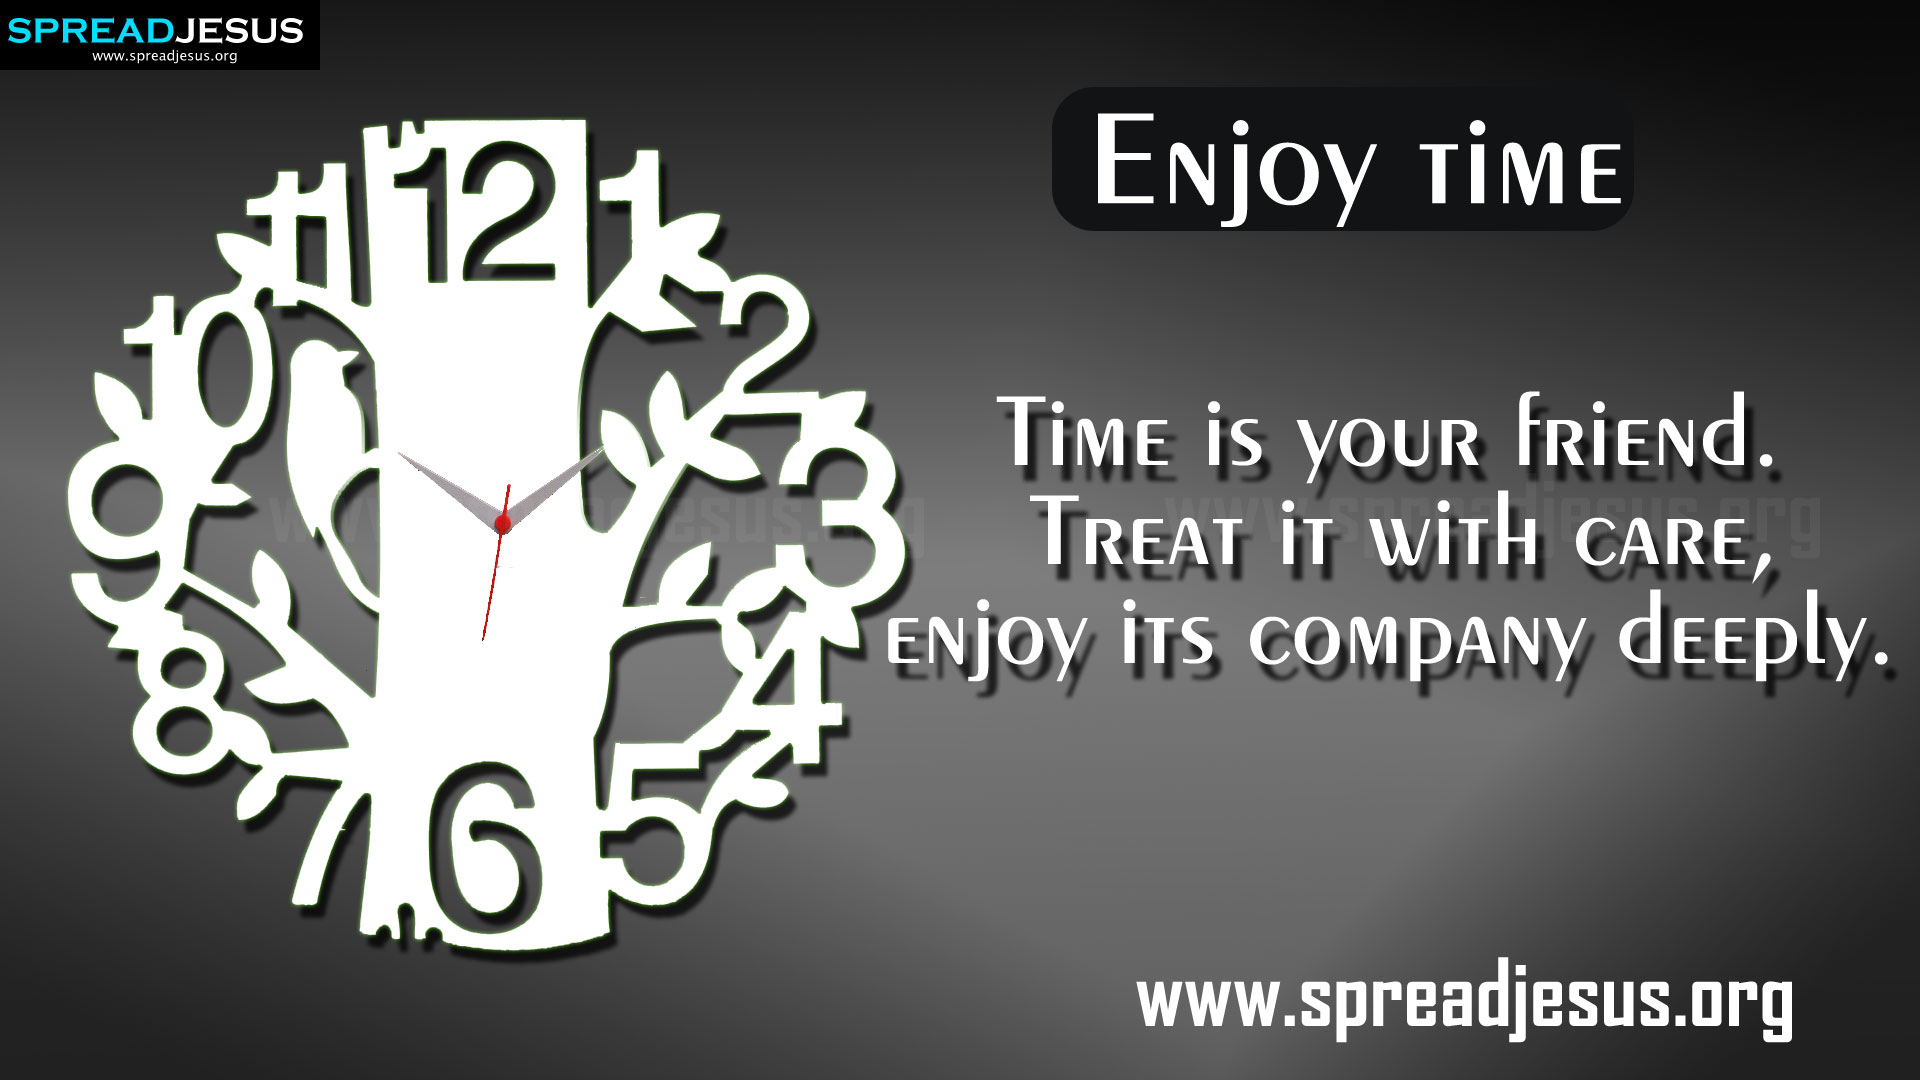 TIME MANAGEMENT QUOTES HD-WALLPAPERS FREE DOWNLOAD Enjoy time